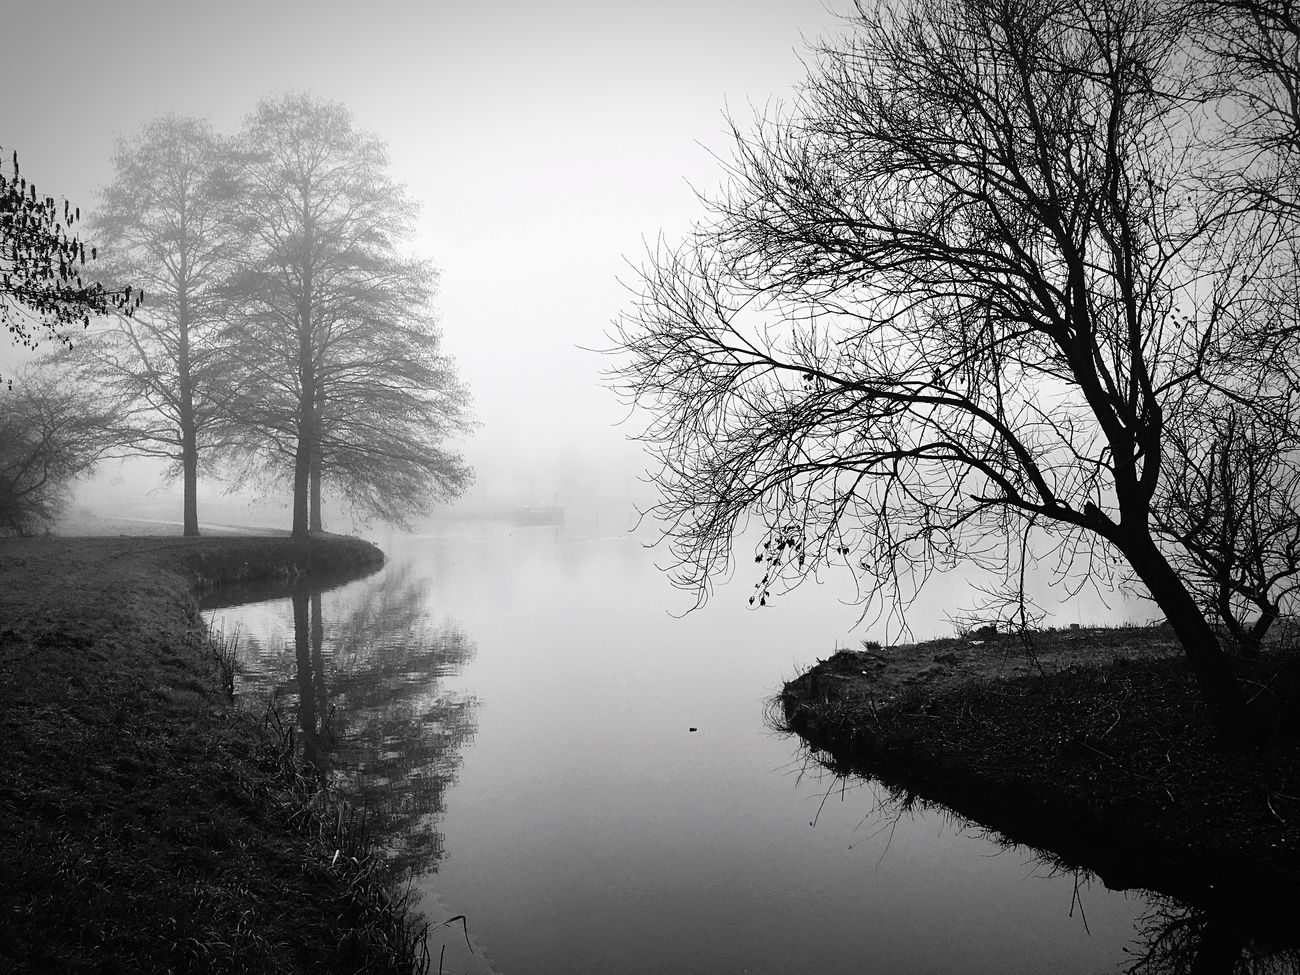 Houten, the Netherlands. Nature Photography River View